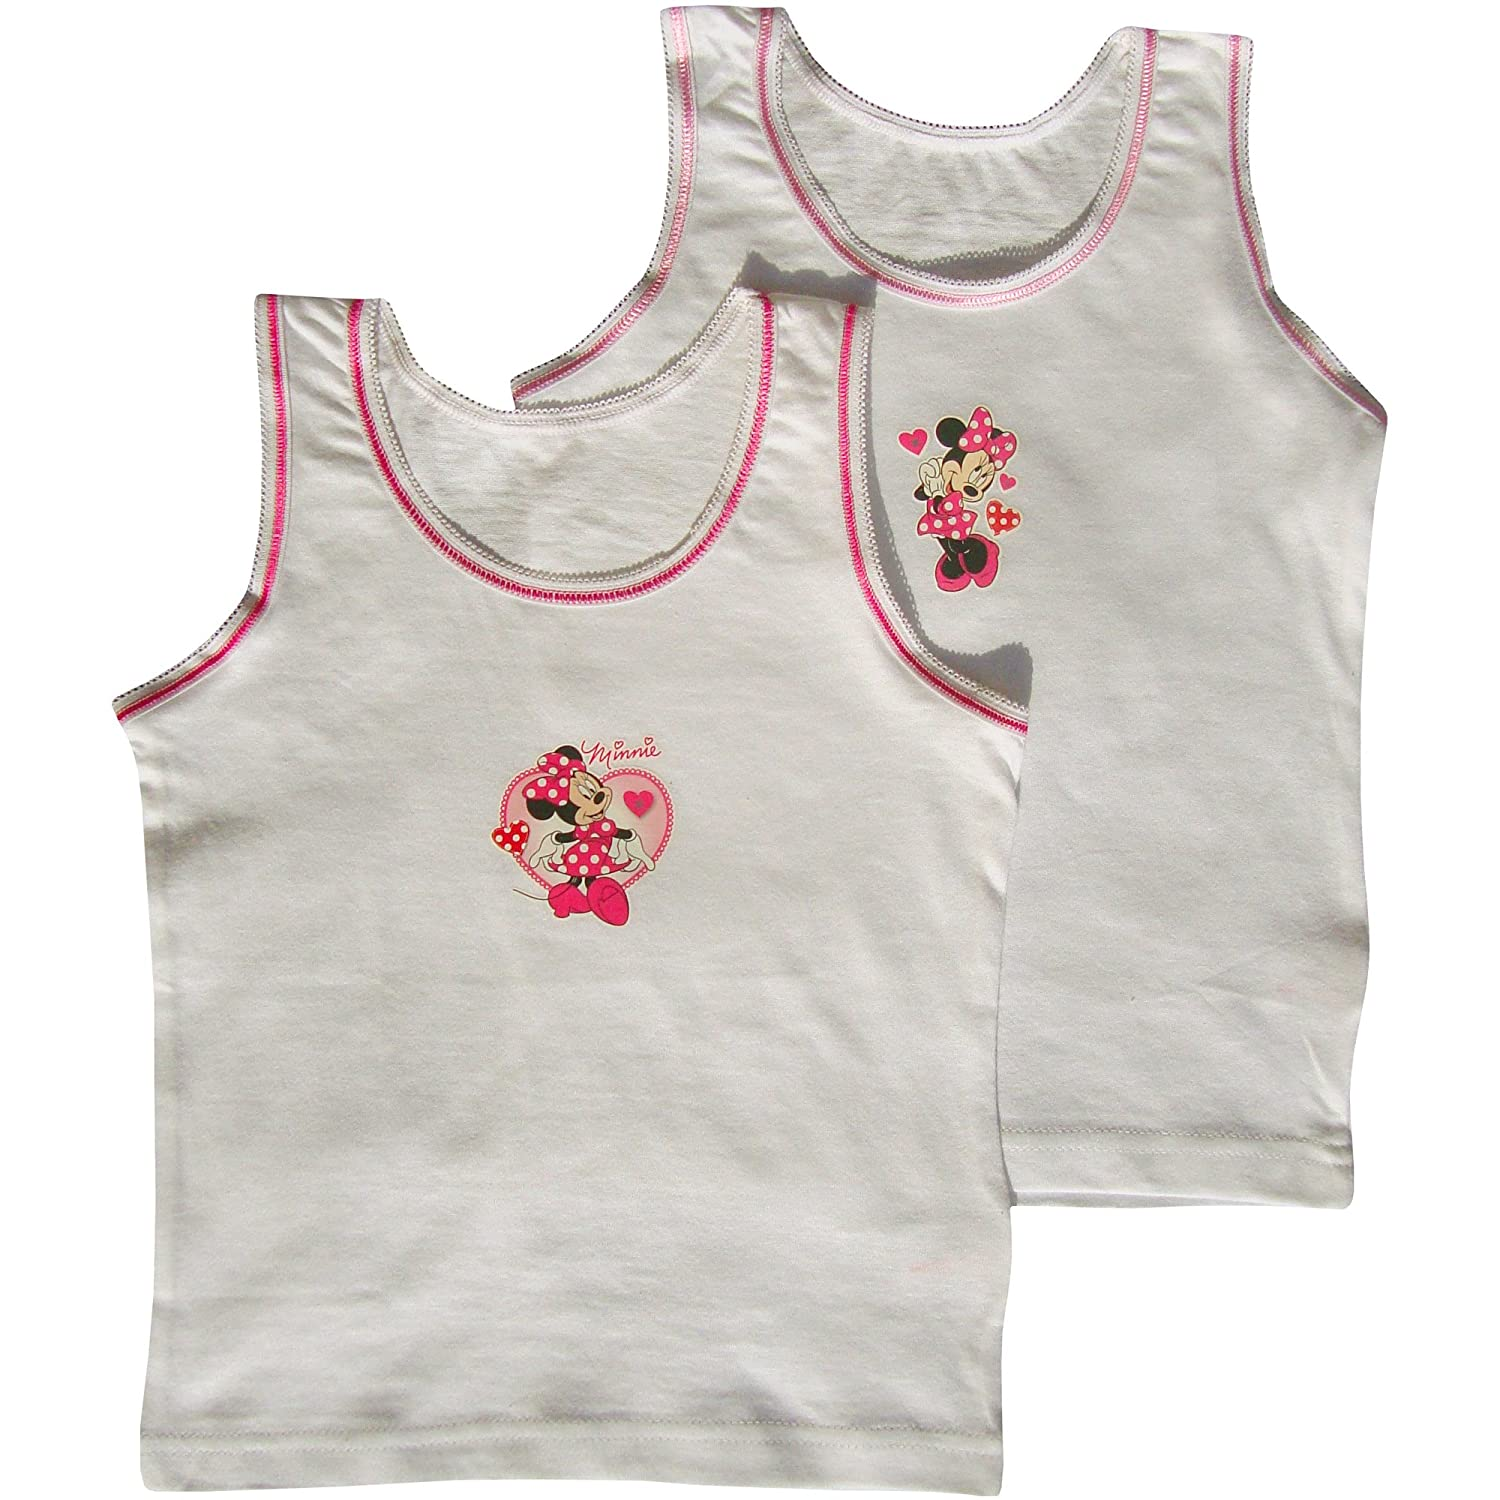 Girl's Disney Minnie Mouse White Summer Sun Vests (Set of 2)